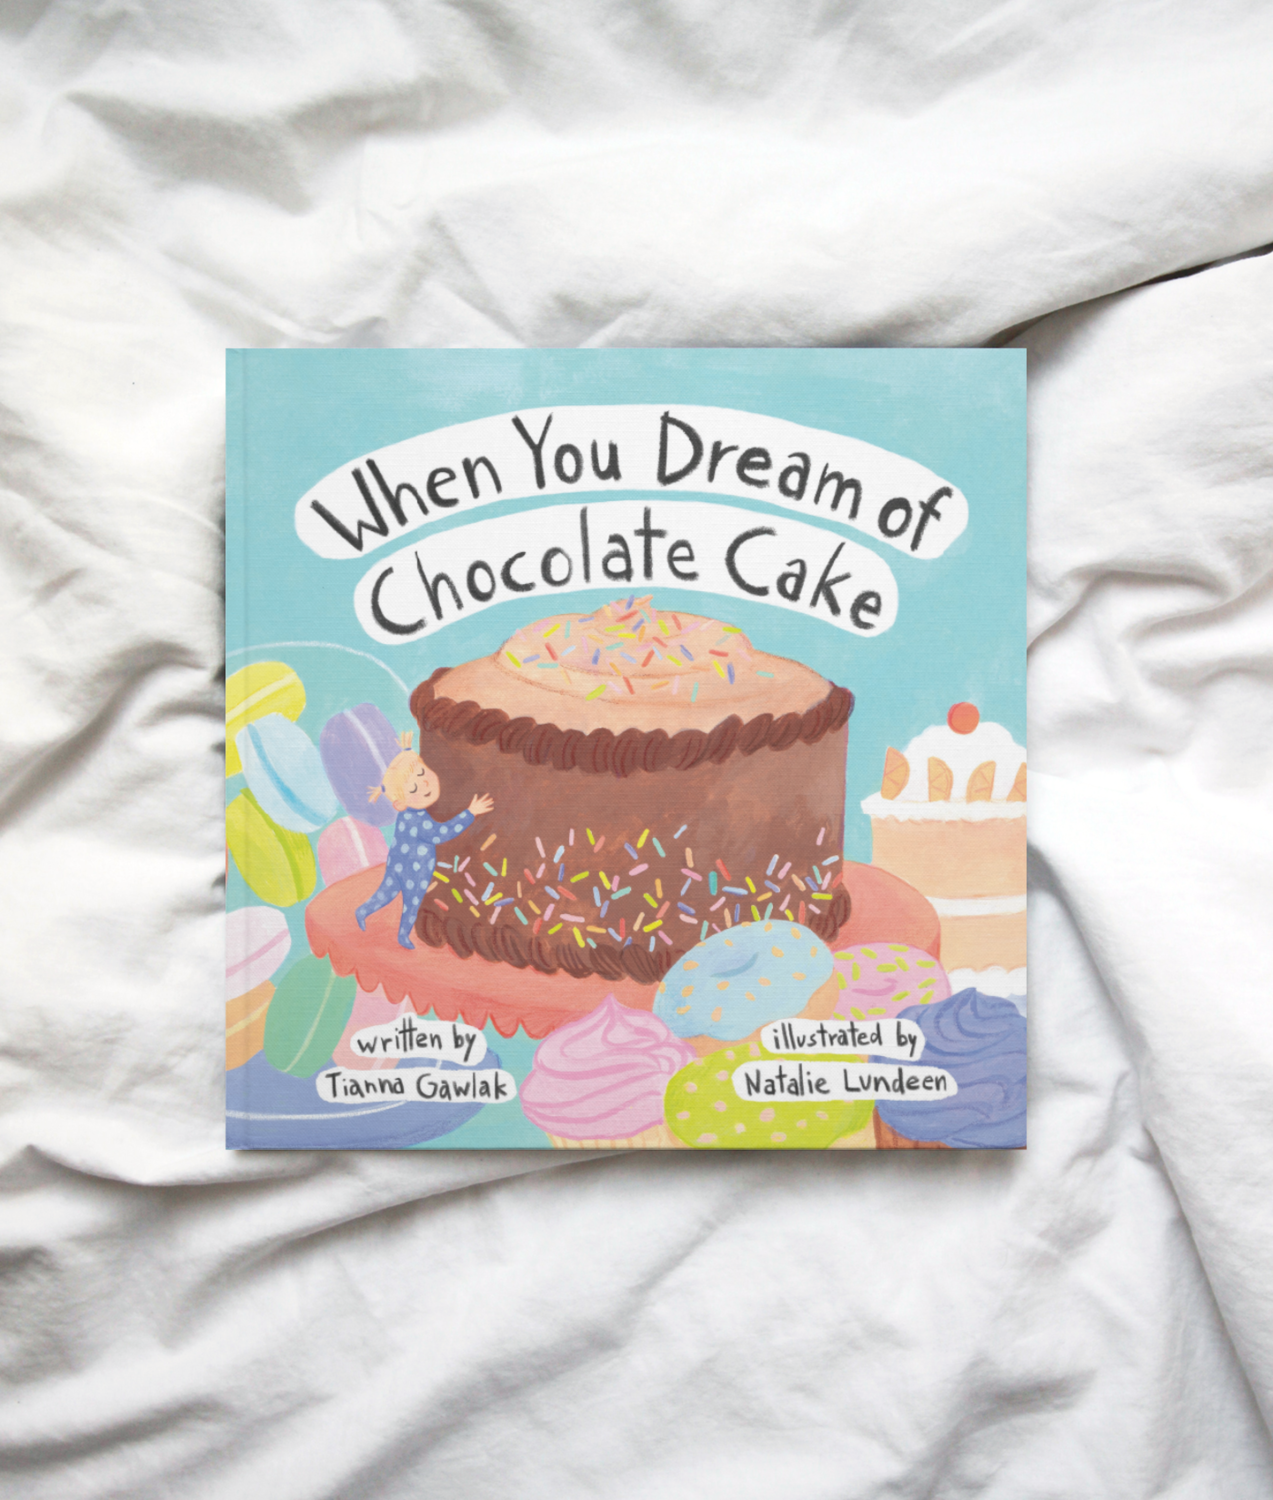 When You Dream of Chocolate Cake